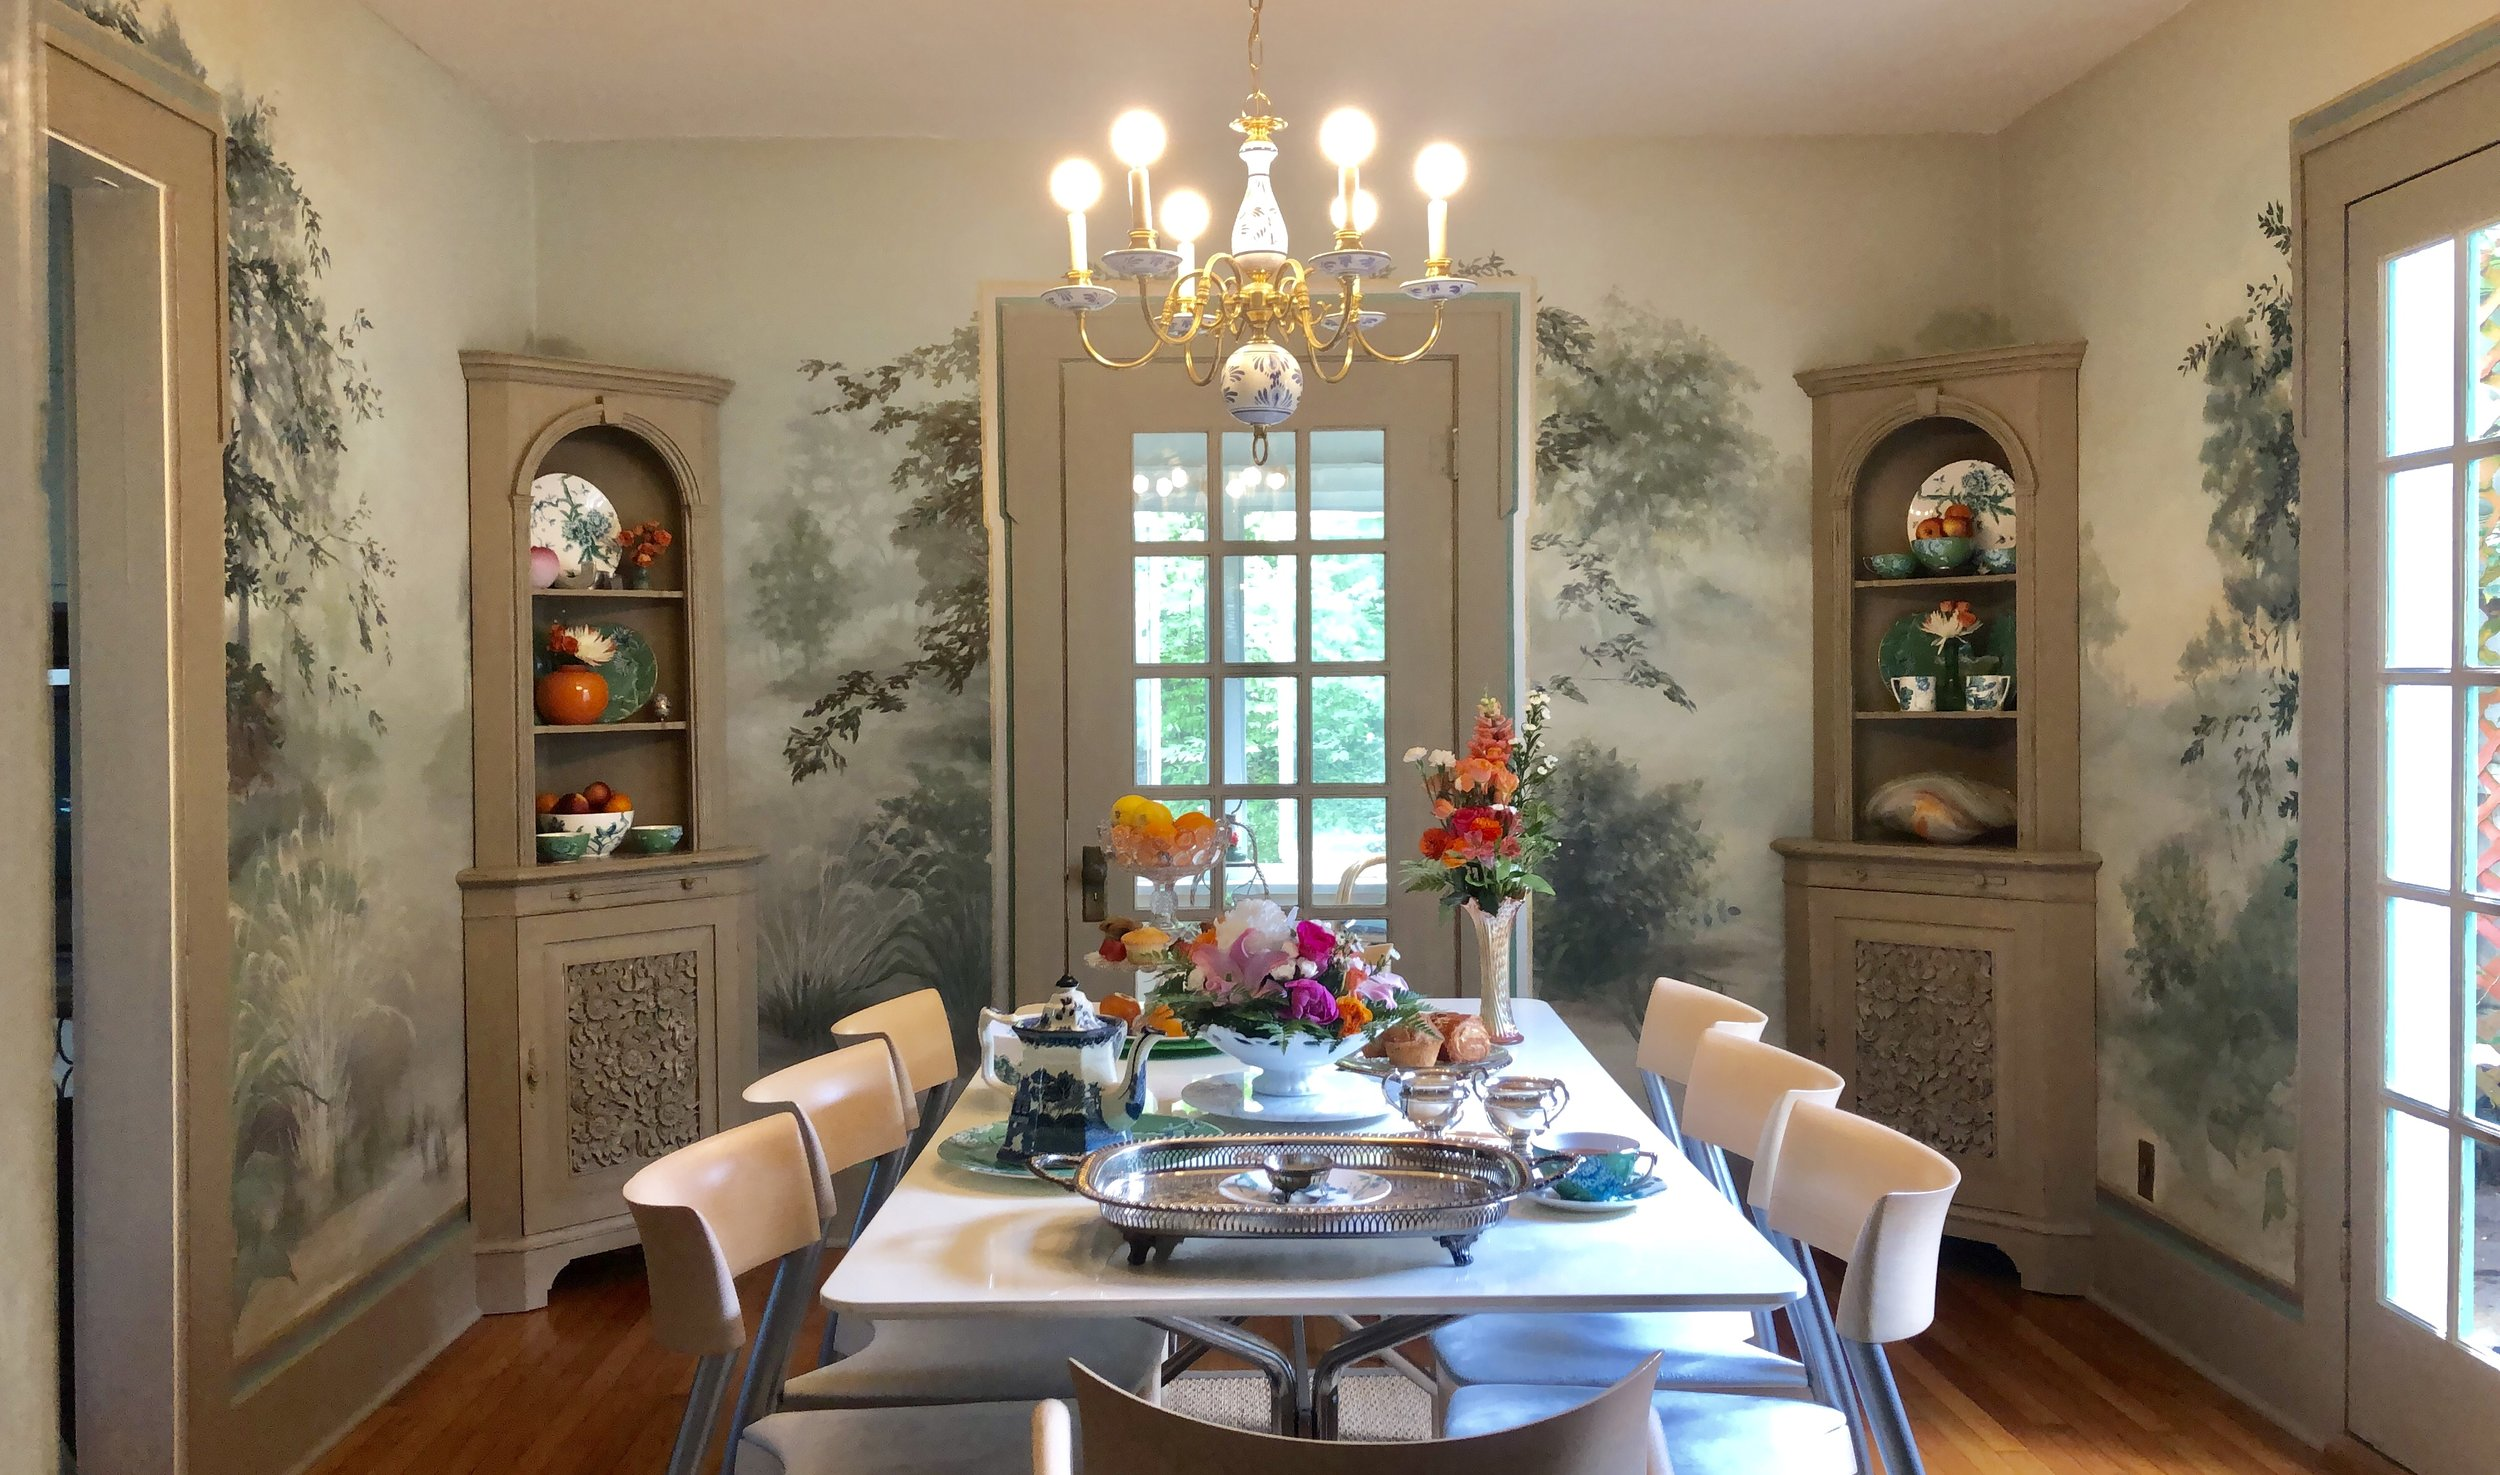 China Hutches filled with Jasper Conran Wedgewood china anchor this dining wall mural